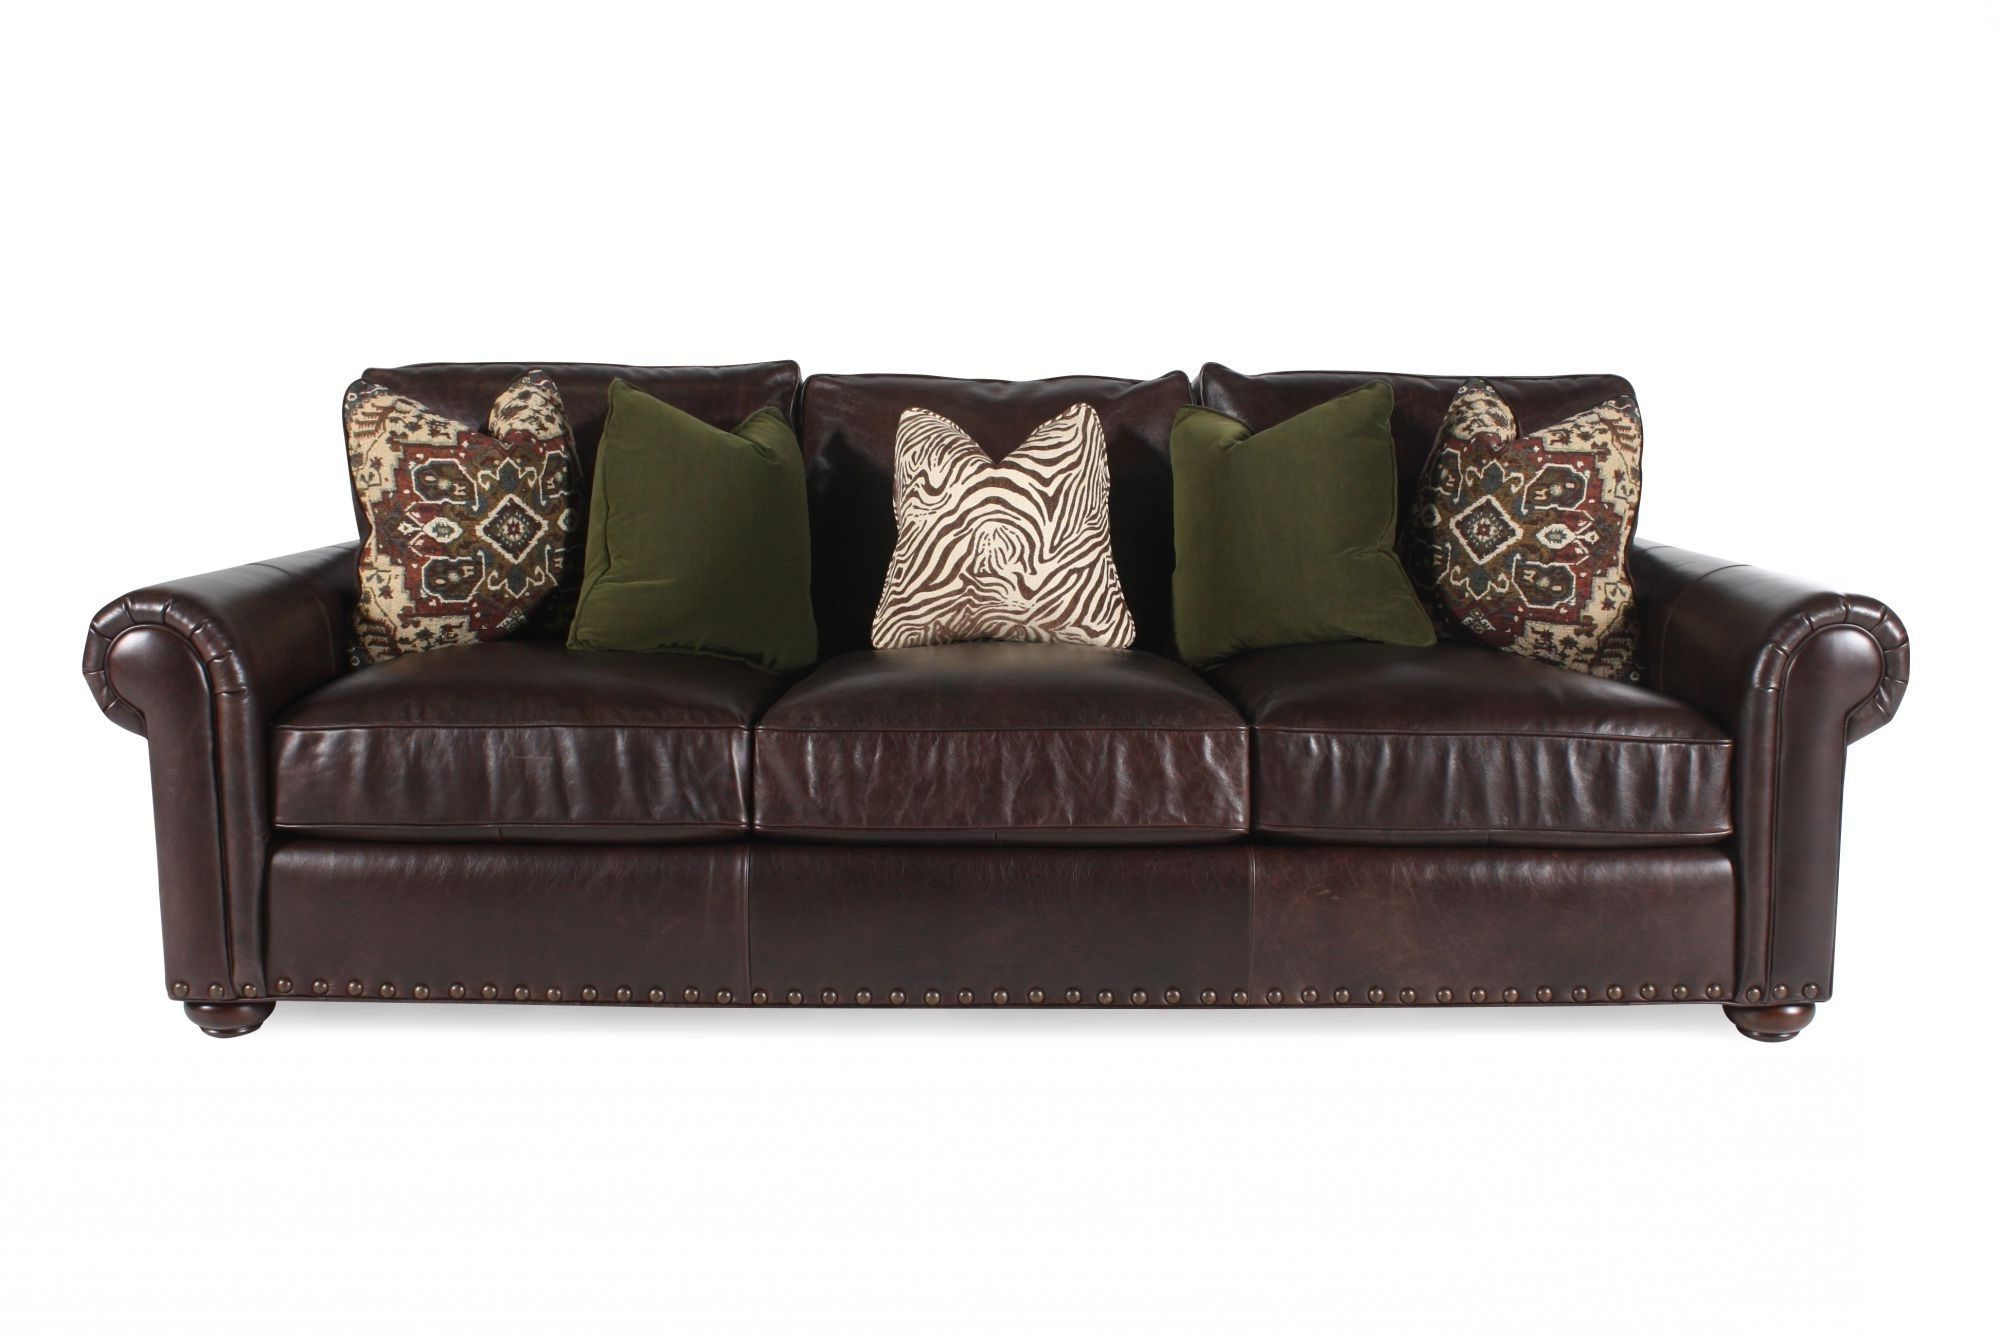 For The Home Regarding Dillards Sectional Sofas (View 14 of 15)